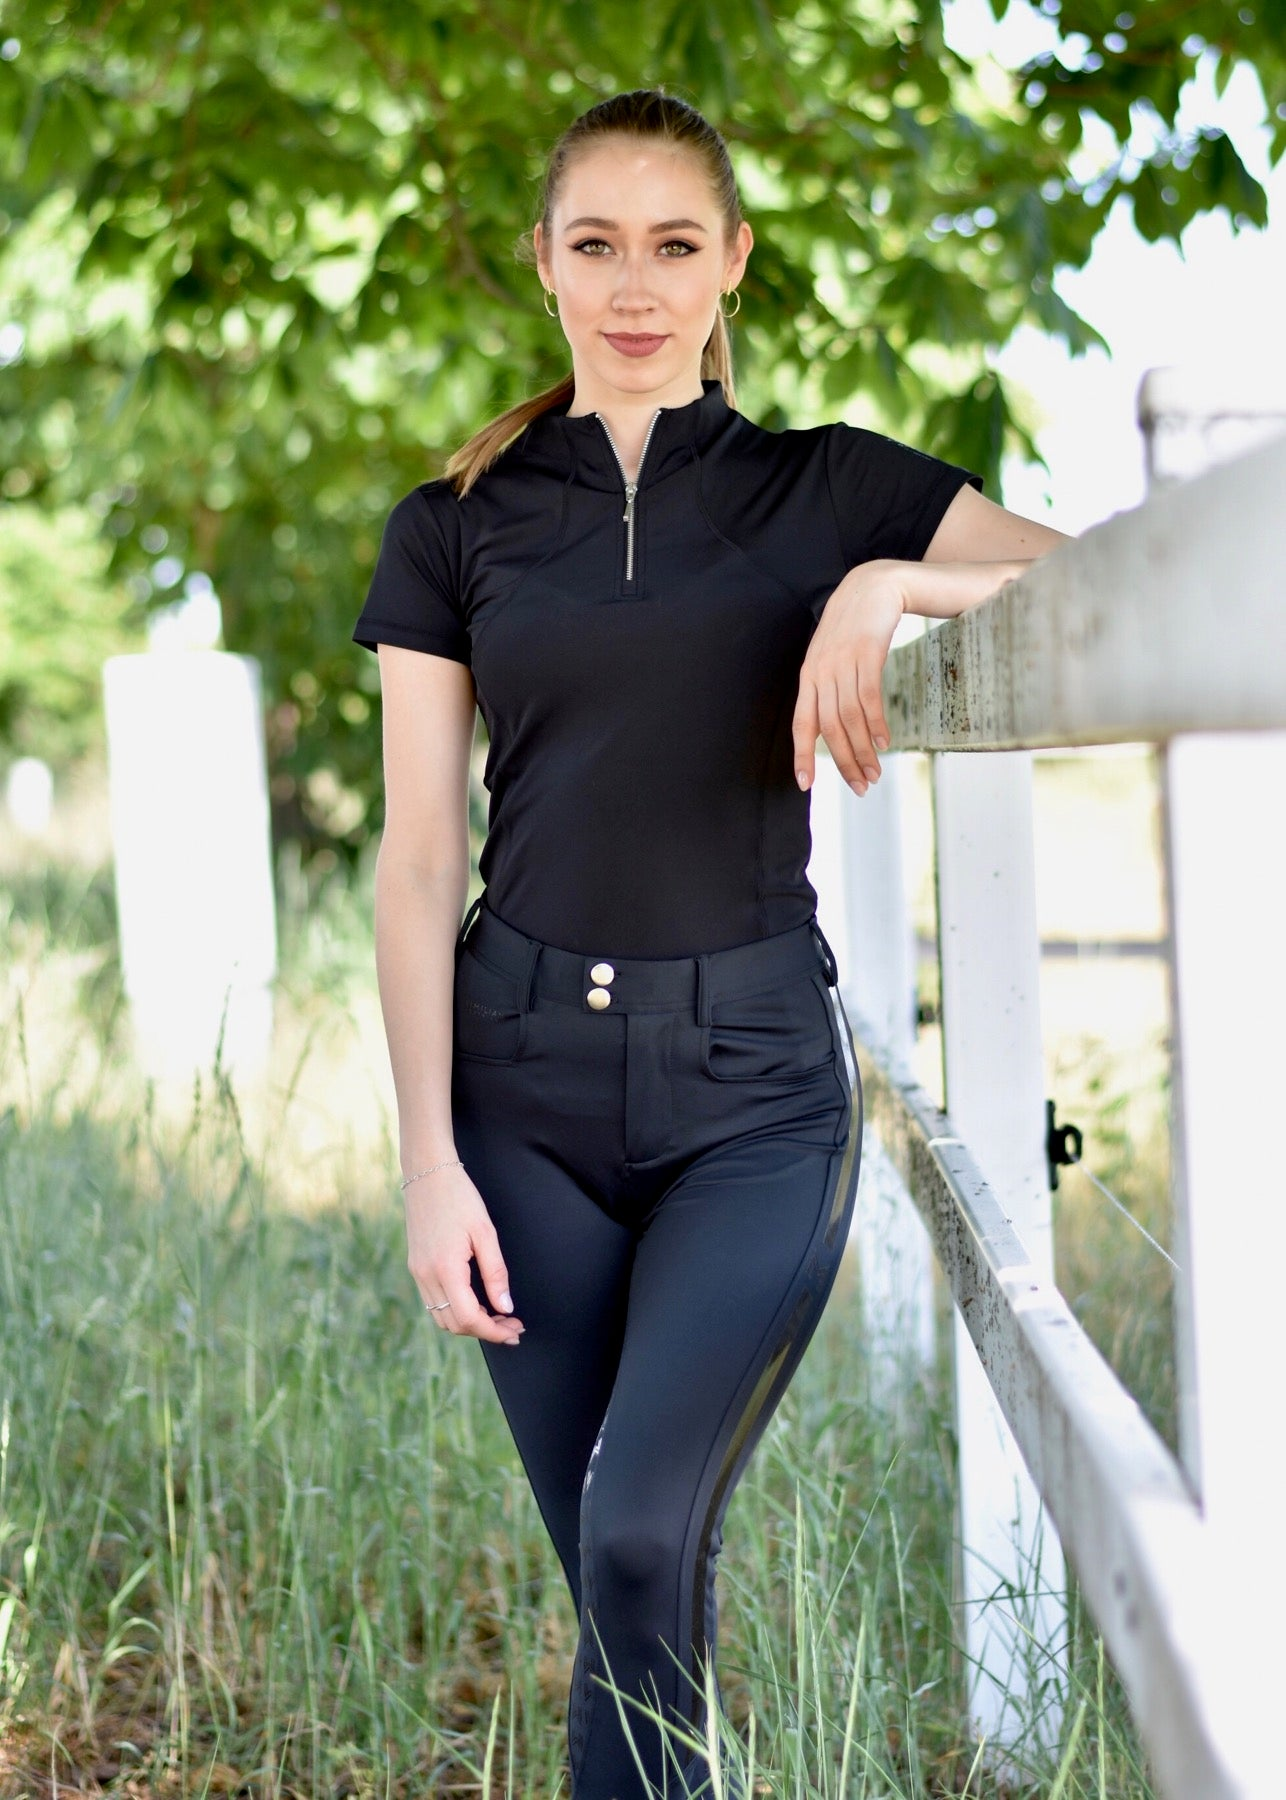 Reflection Technical Shirt - Black